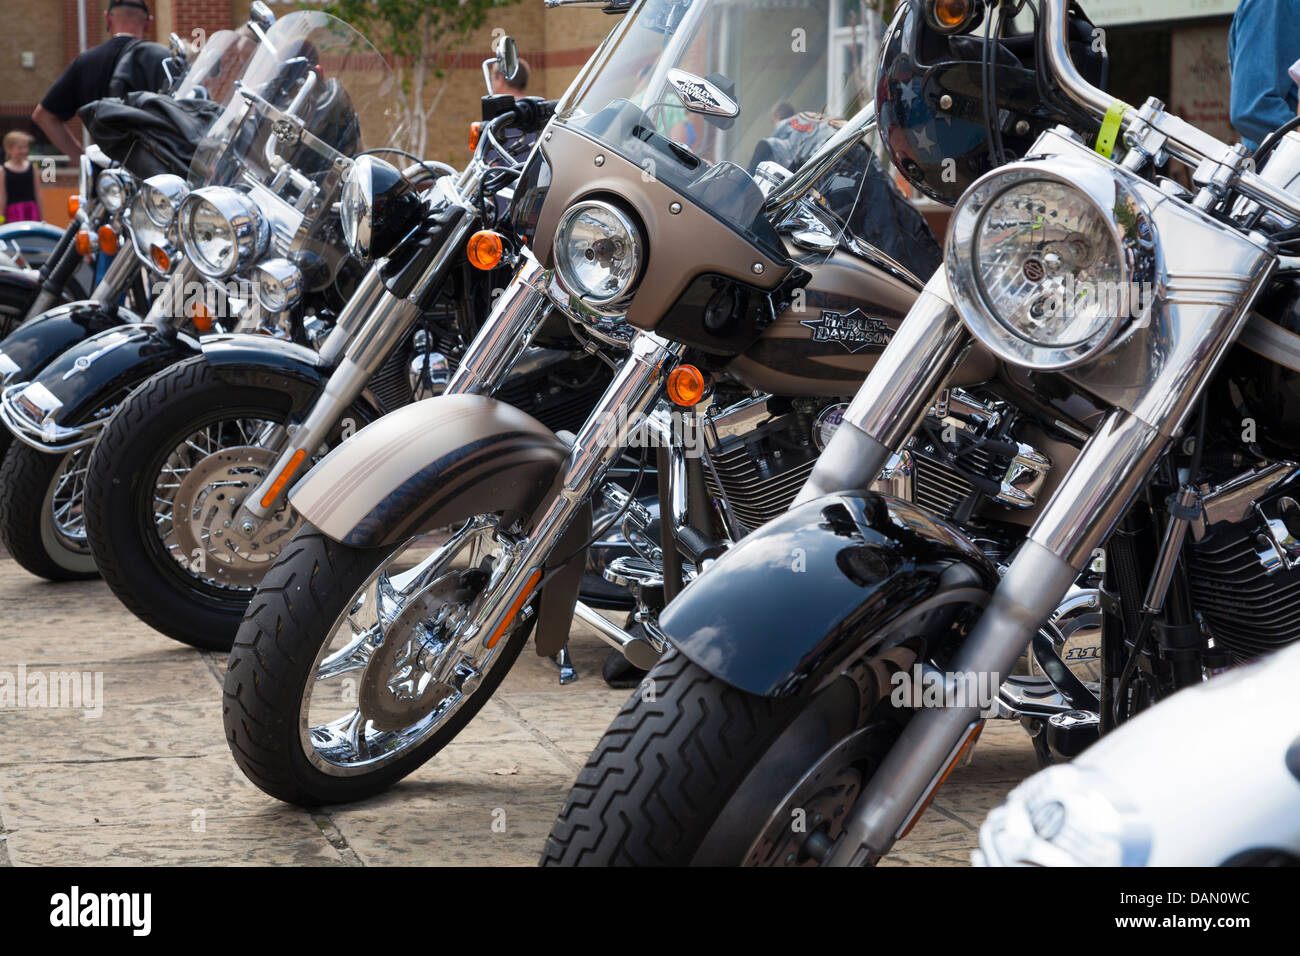 row of headlamps and front forks of Harley Davidson motorcycles - Stock Image